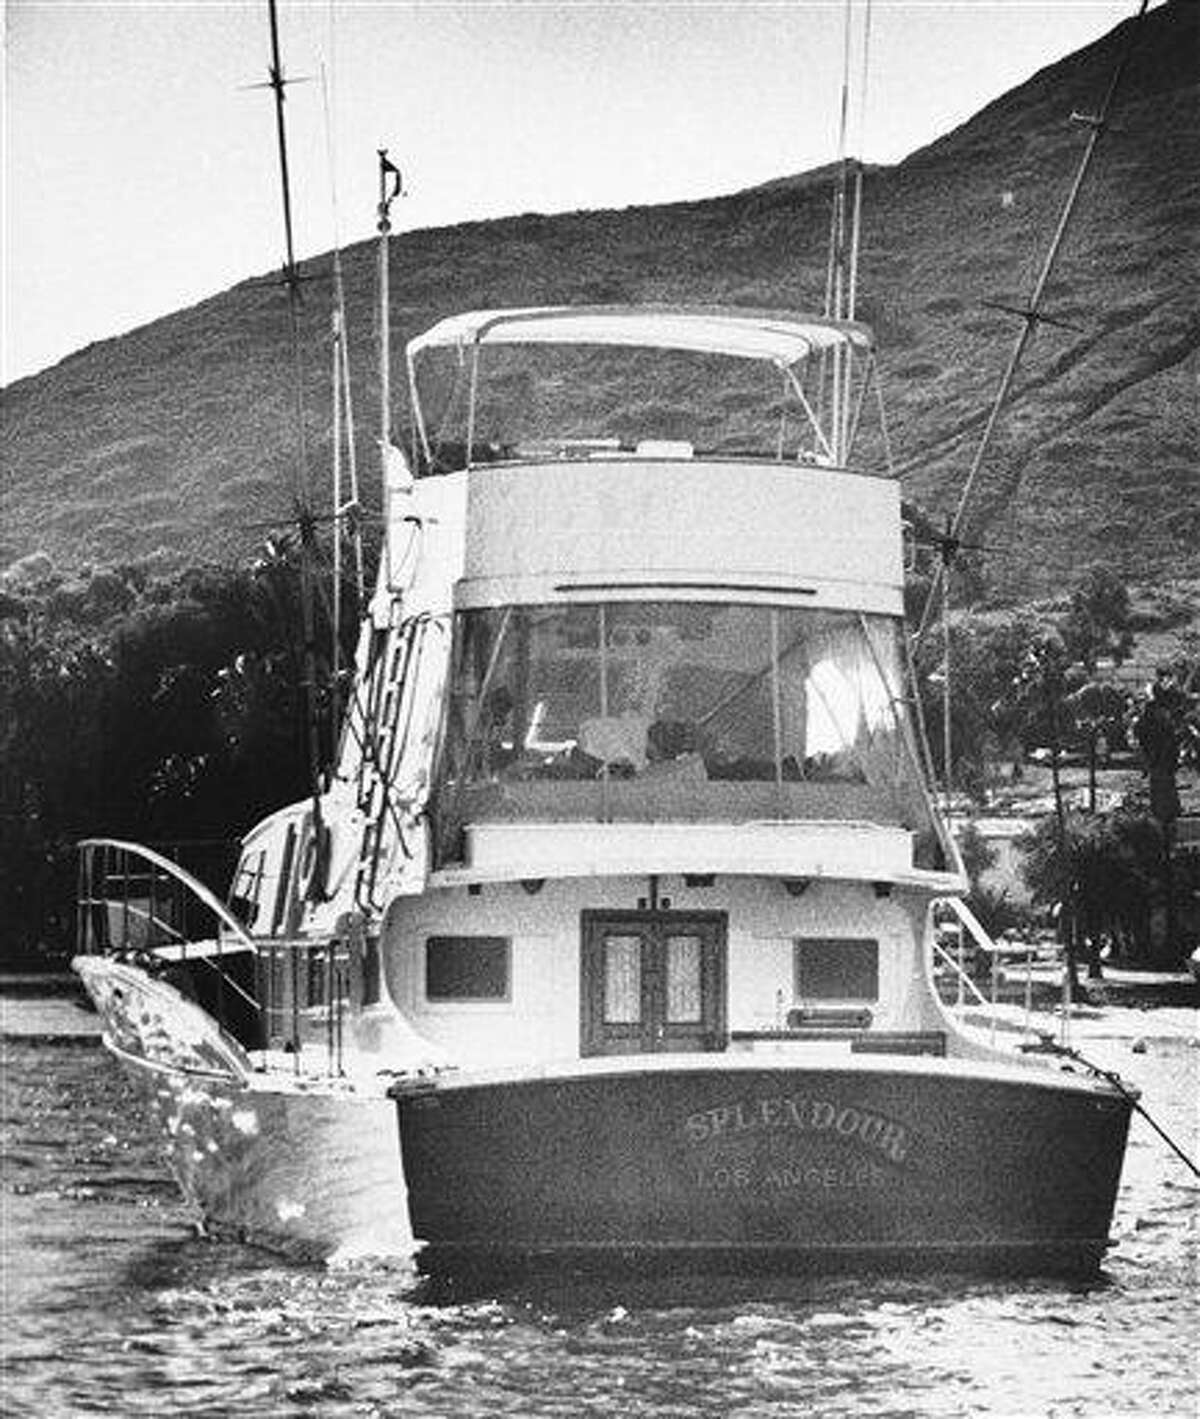 """The 55-foot yacht """"Splendour,"""" belonging to actor Robert Wagner and his wife, actress Natalie Wood, sits in the waters off Catalina Island in Santa Catalina, Calif., near the site where Harbor Patrol personnel and lifeguards discovered the body of Wood, an apparent drowning victim, Nov. 29, 1981. Los Angeles sheriff's homicide detectives are taking another look at Wood's 1981 drowning death based on new information, officials announced Thursday, Nov. 17, 2011. (AP Photo/Harrington, File)"""